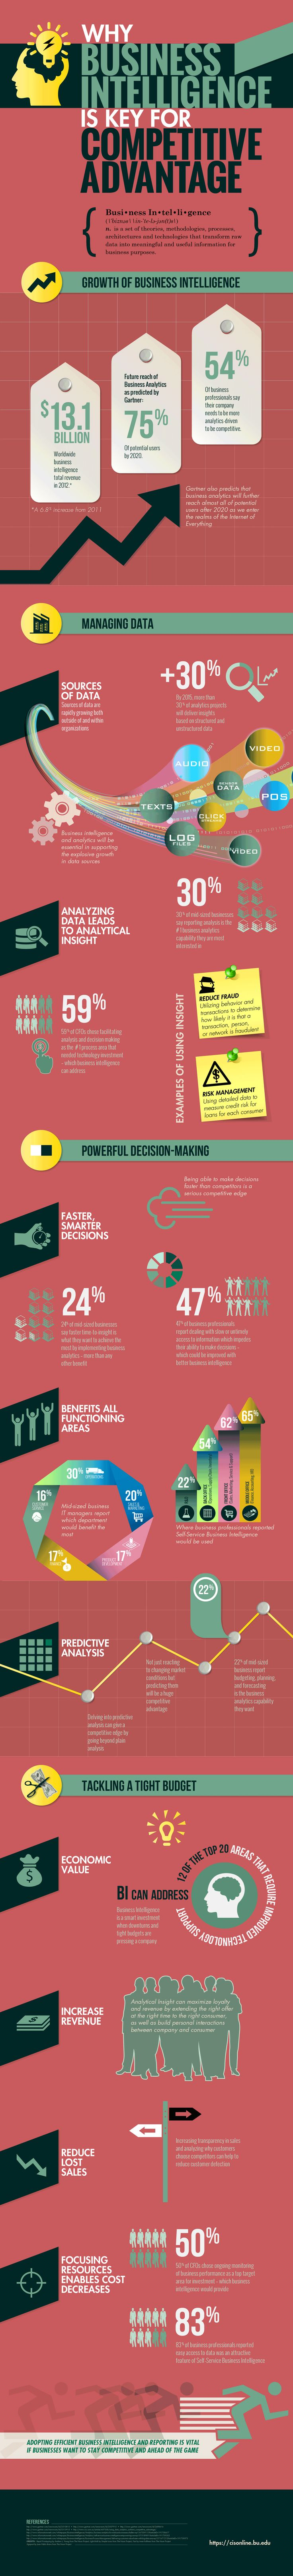 """""""The Business Intel You Need to Succeed - Infographic"""" Re-Pinned by Strategic Business Management firm, The Devcon Group. https://www.thedevcongroup.com"""